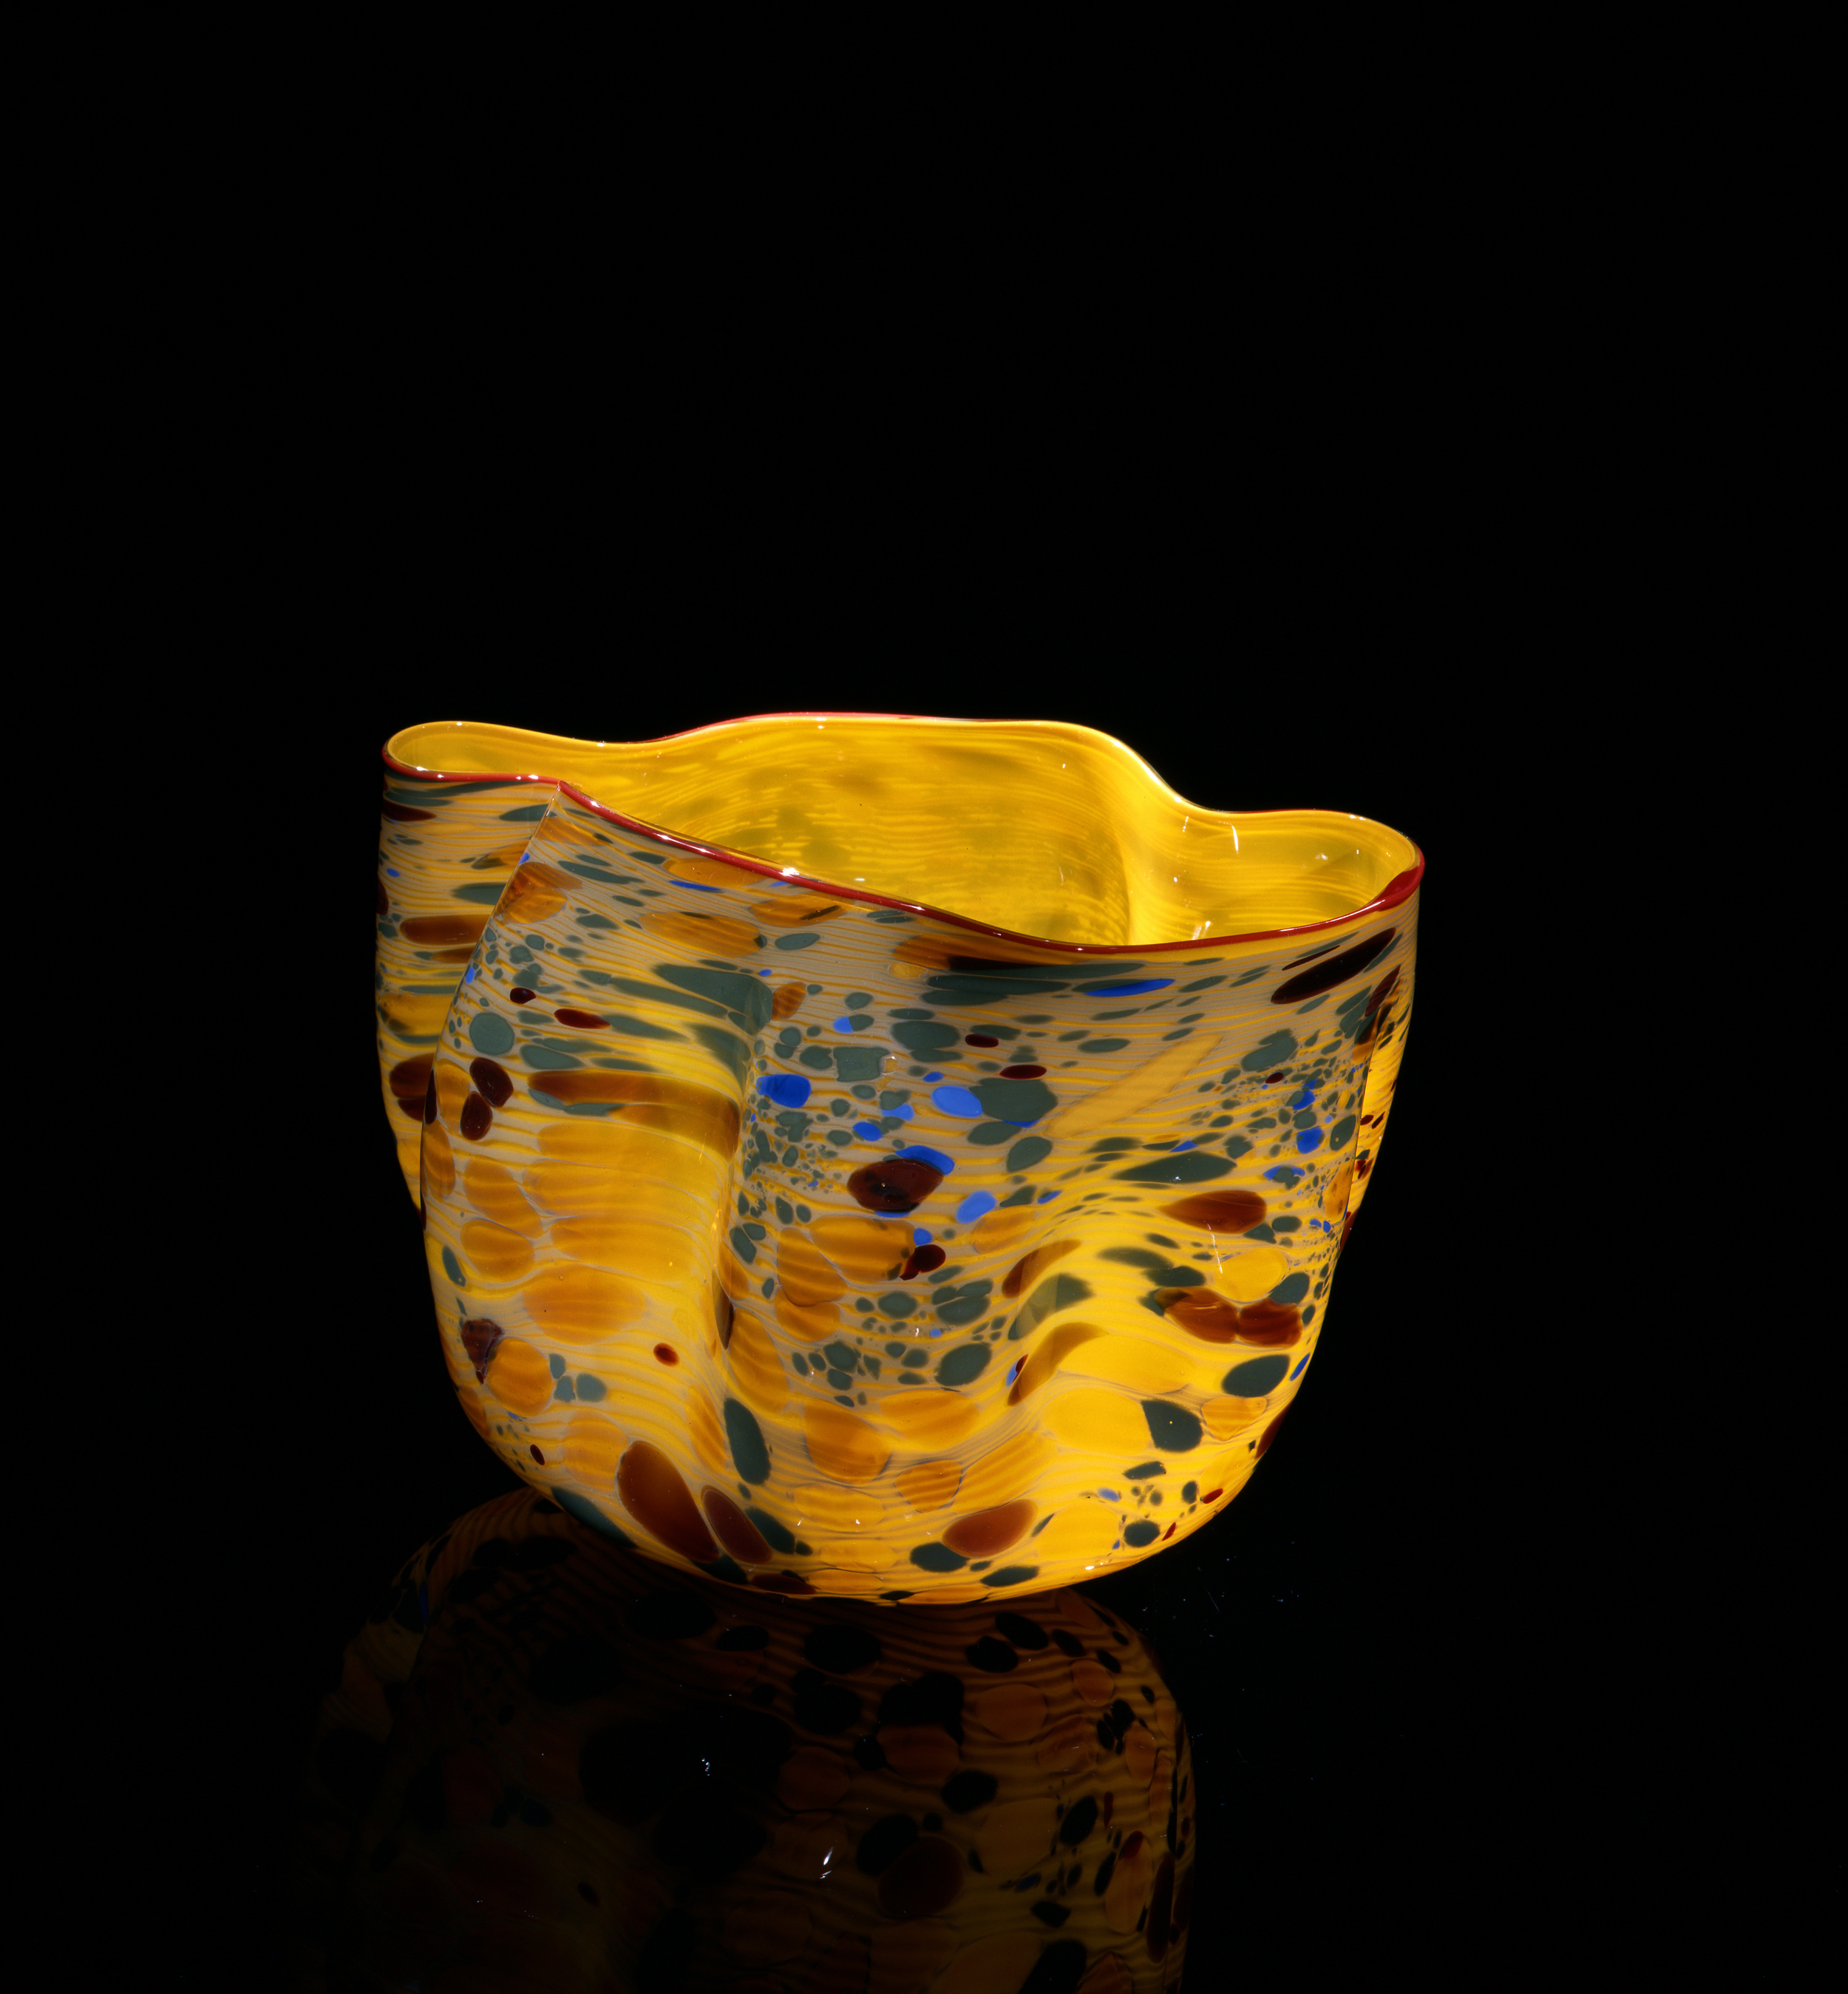 Dale Chihuly, Boron Yellow Macchia with Red Orange Lip Wrap (1982, glass, 6 x 9 x 7 inches), DC.125